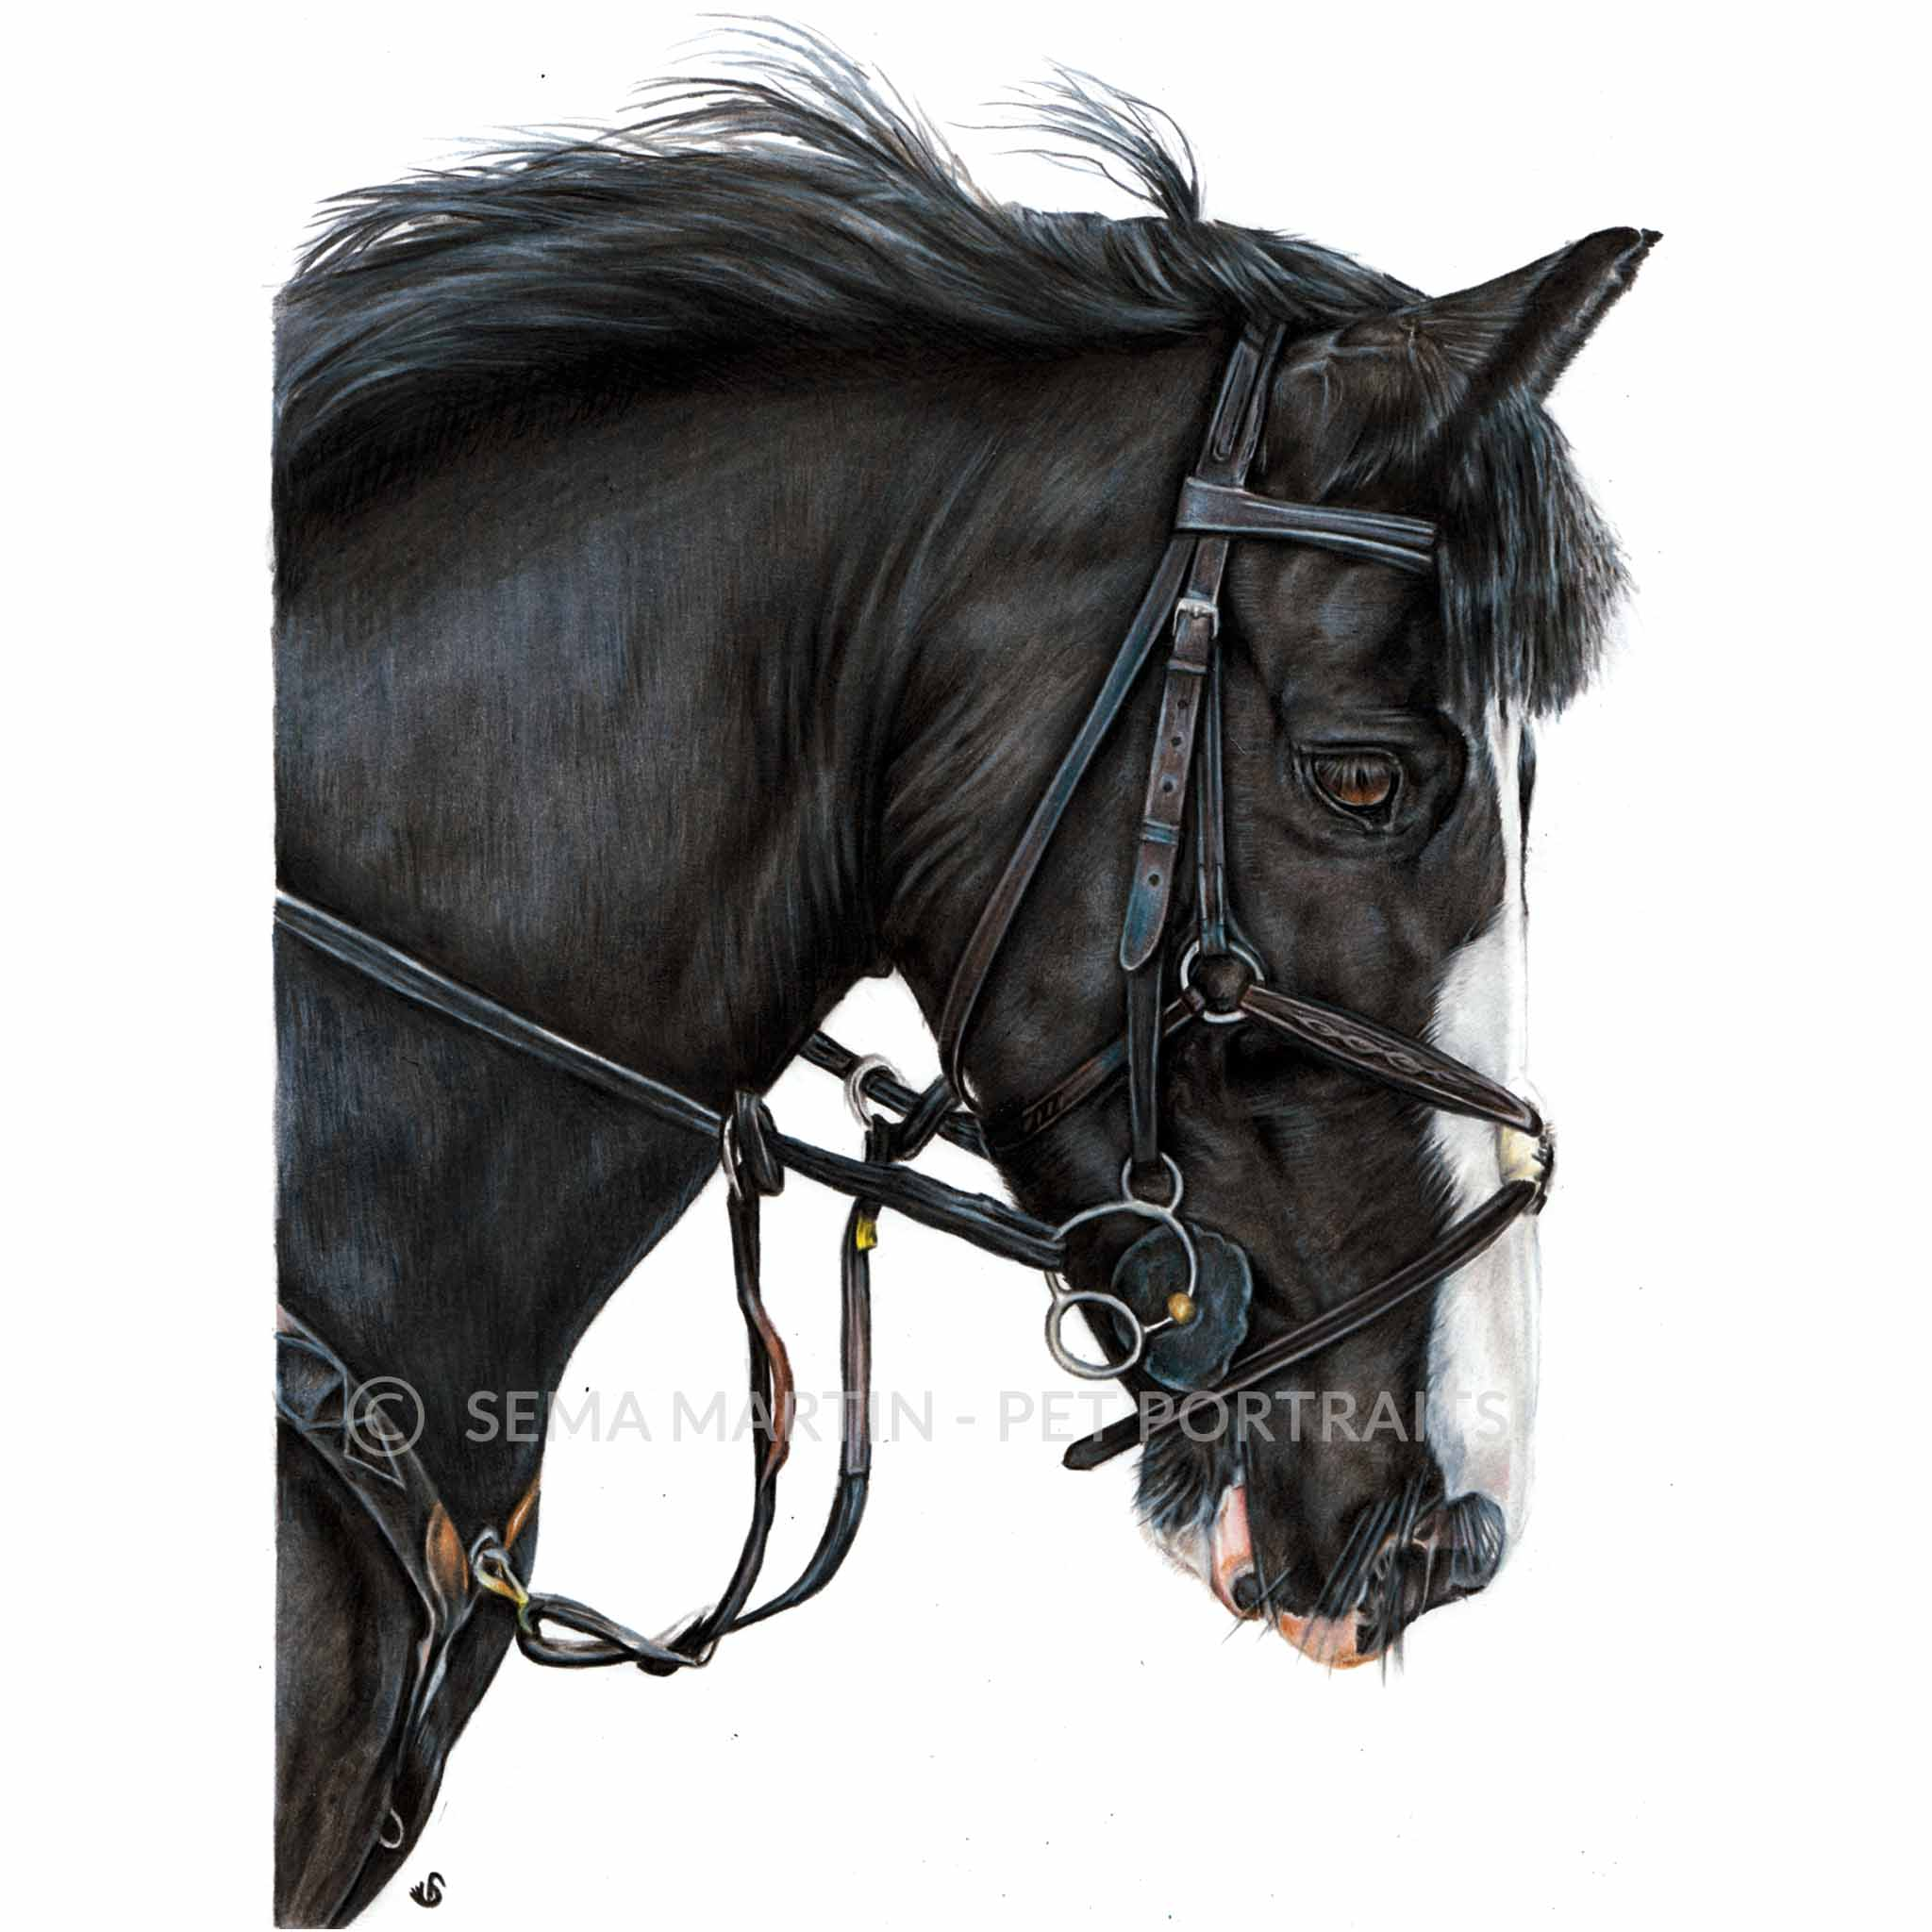 'Billy' - UK, 8.3 x 11.7 inches, 2018, Colour Pencil Horse Portrait by Sema Martin